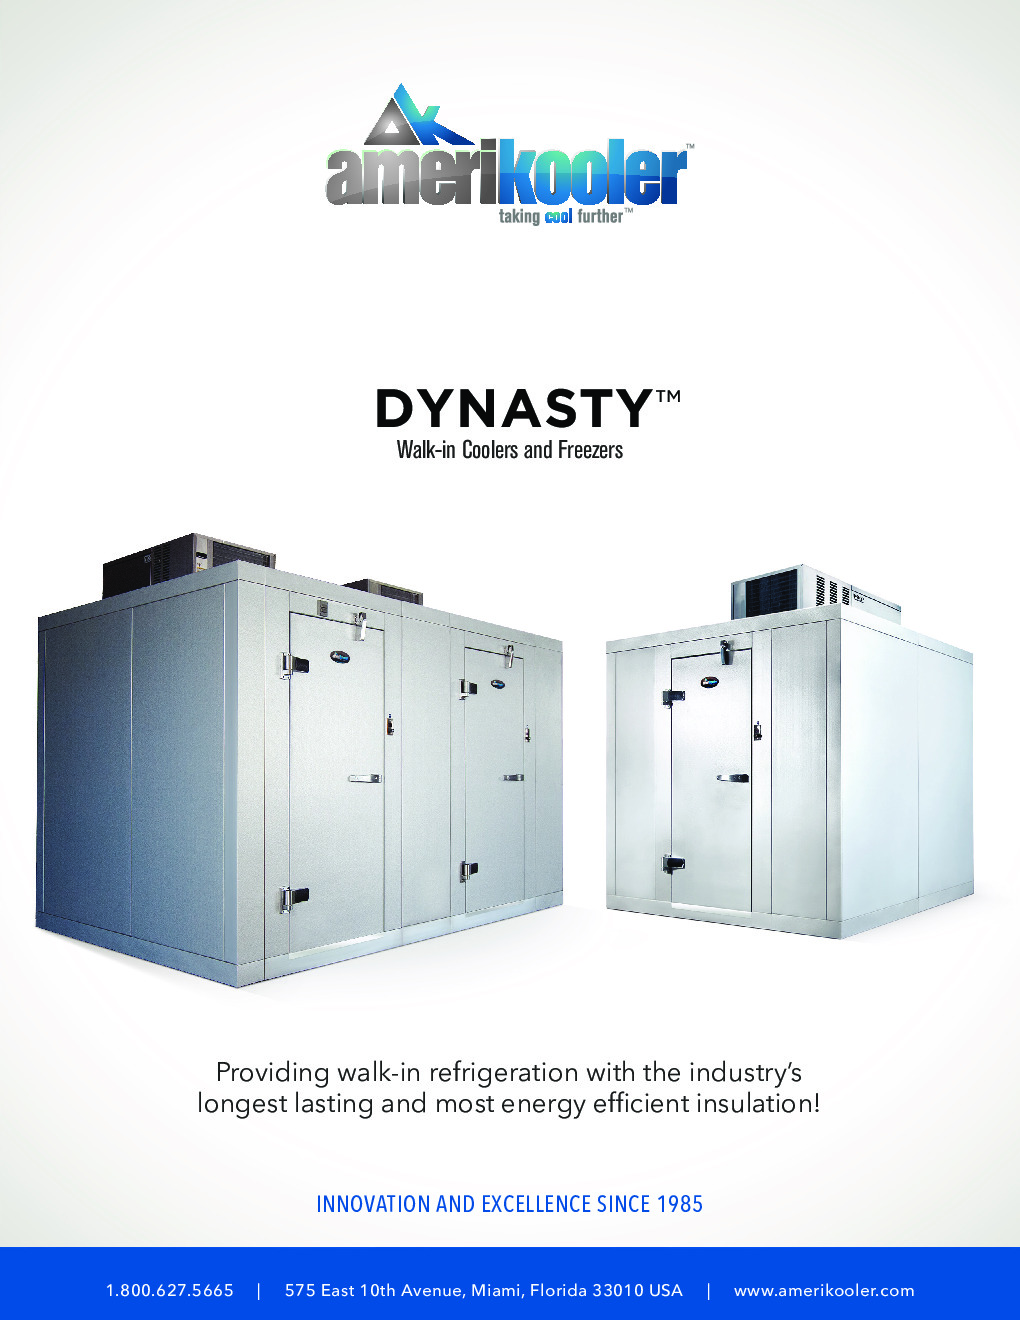 AmeriKooler DW071377N-6/7-SC 7' X 13' Walk-In Cooler, 7' L Cooler without Floor and 6' L Freezer, Self Contained